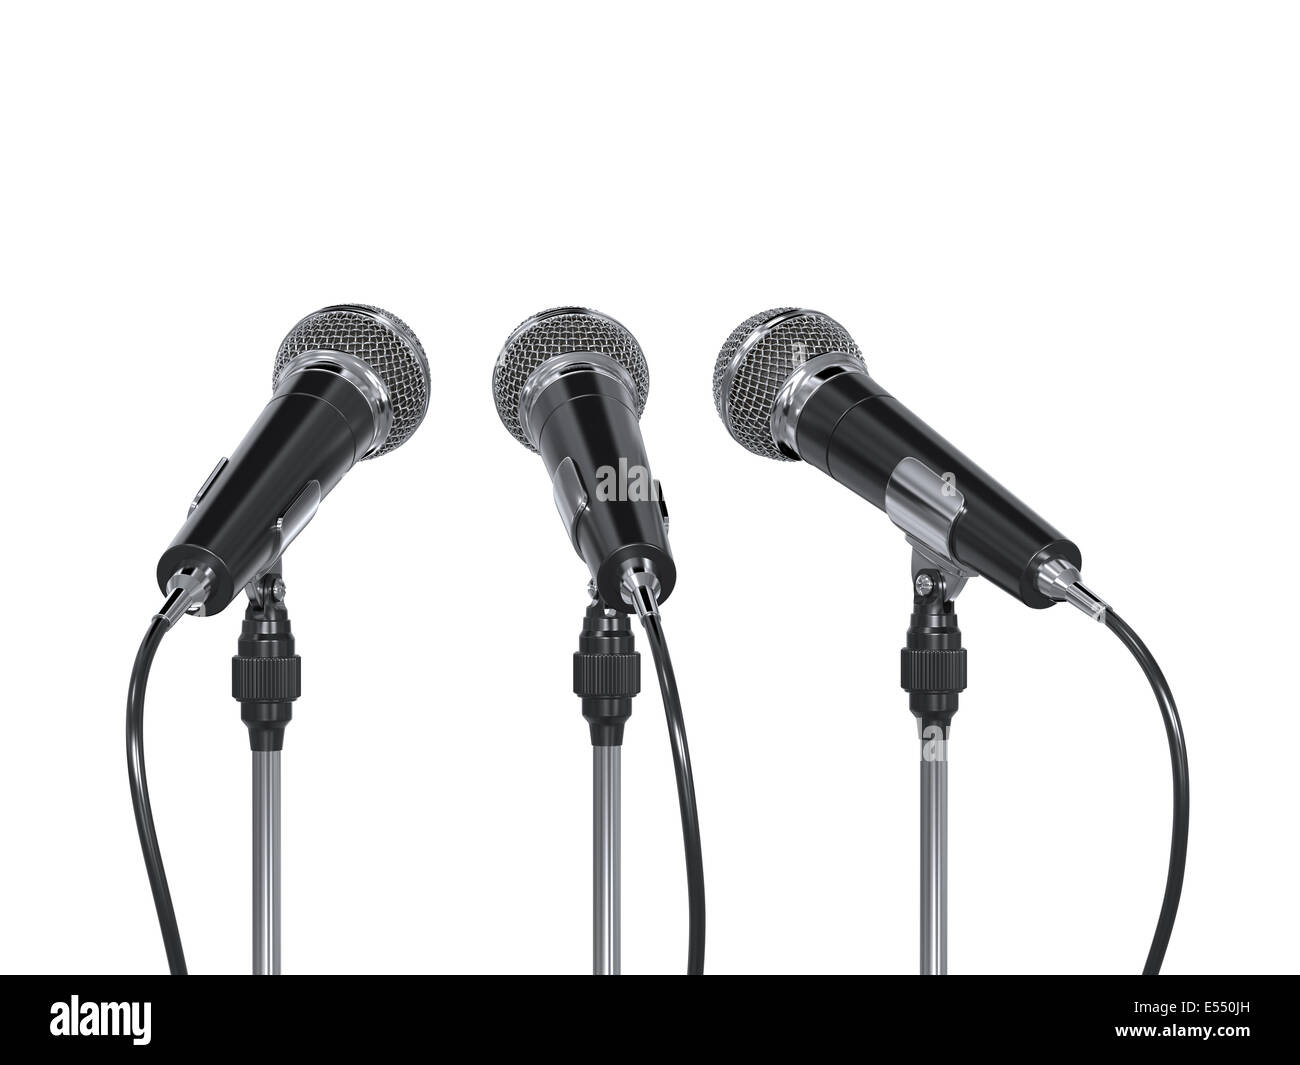 3d render of microphones isolated on white background - Stock Image